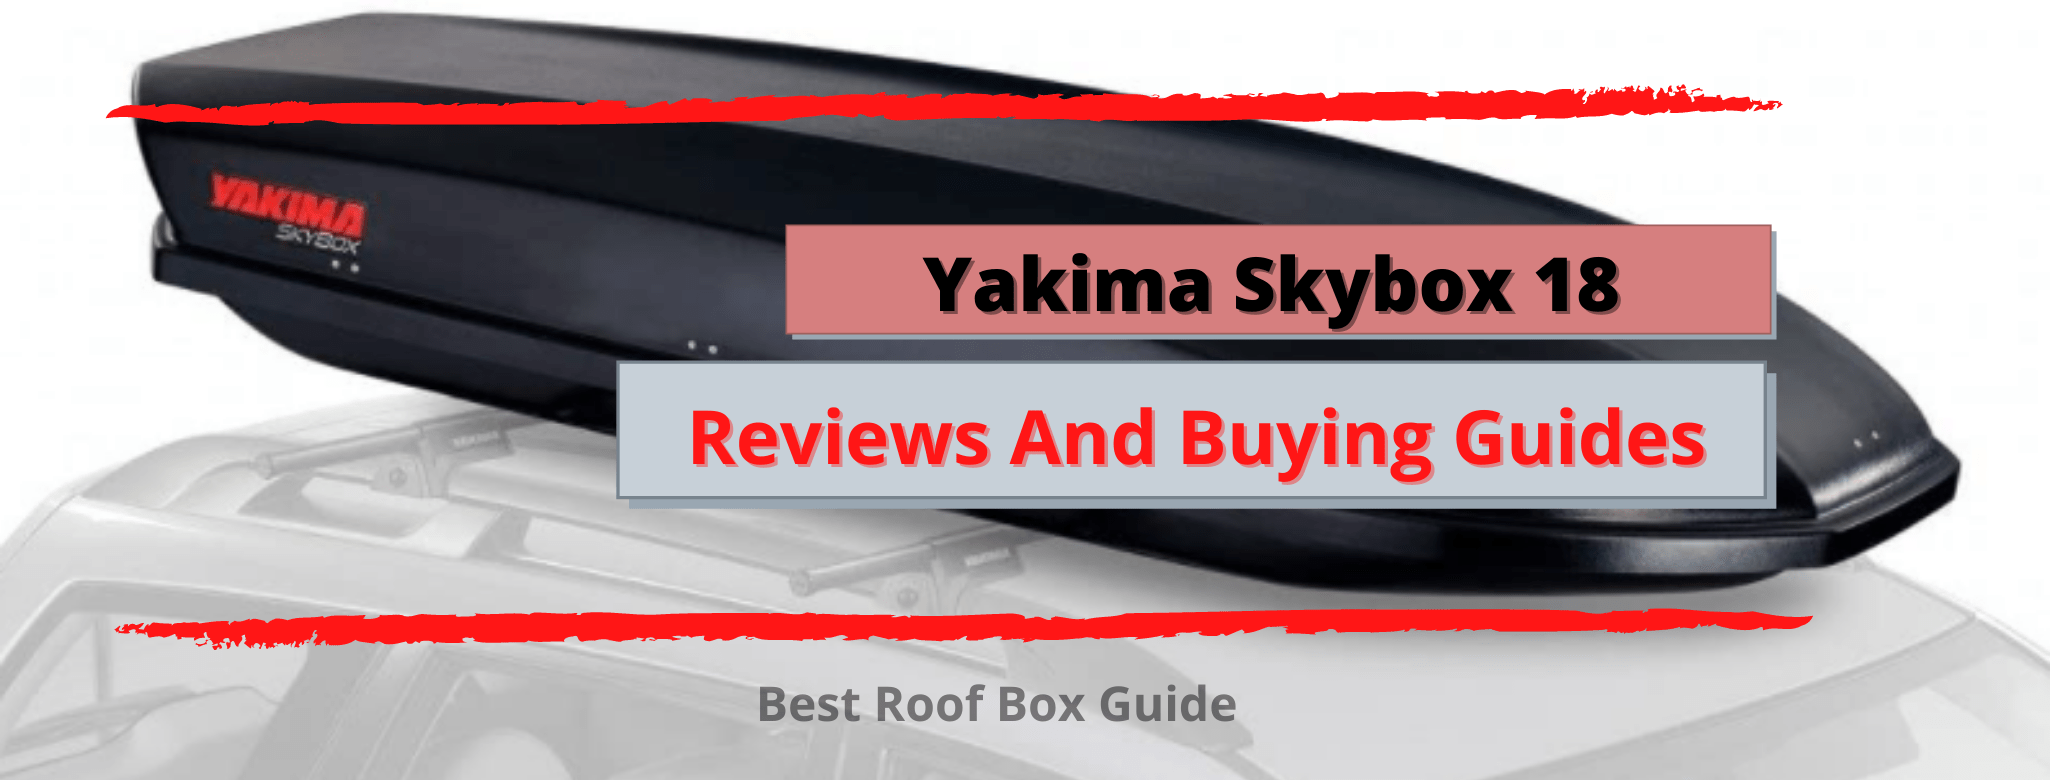 ☑️ Yakima Skybox 18 Reviews And Buying Guides – 2021❗️